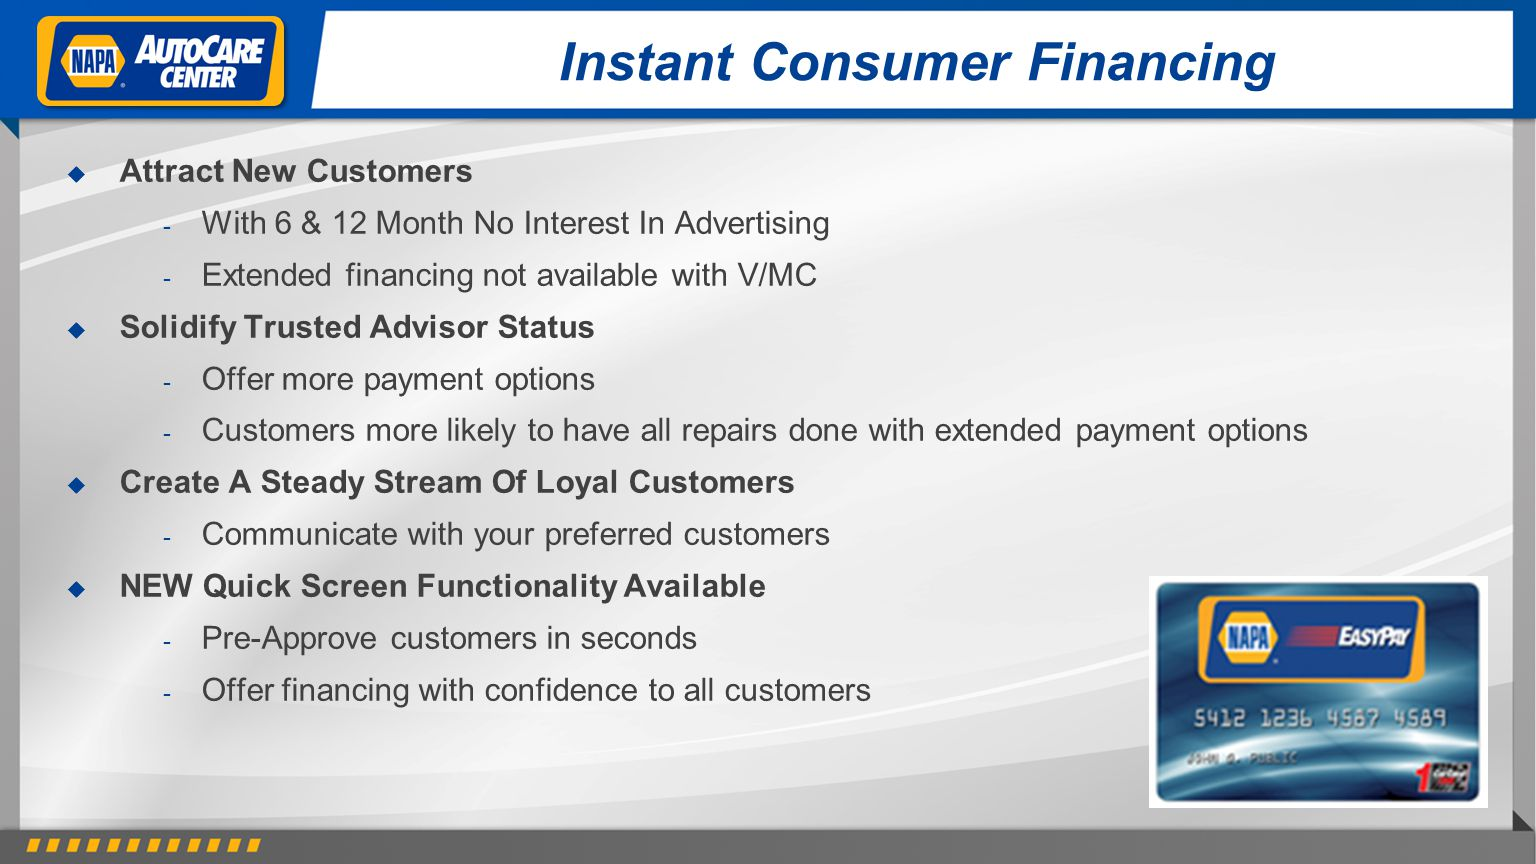 Instant Consumer Financing Attract New Customers - With 6 & 12 Month No Interest In Advertising - Extended financing not available with V/MC Solidify